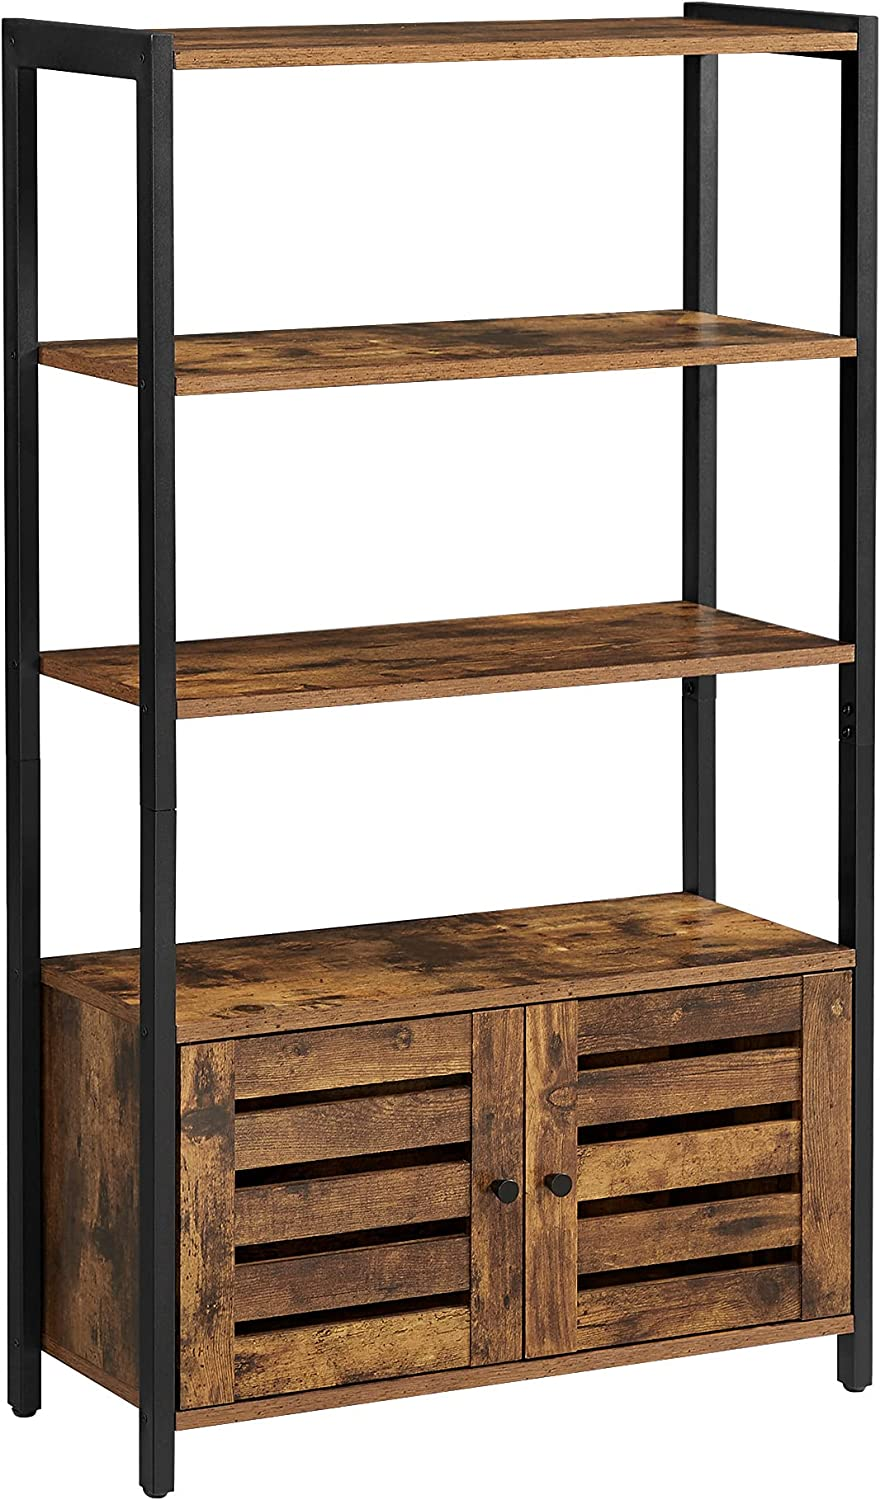 Many popular brands VASAGLE LOWELL Bookshelf Storage Cabinet with Shelves L Max 47% OFF 3 2 and